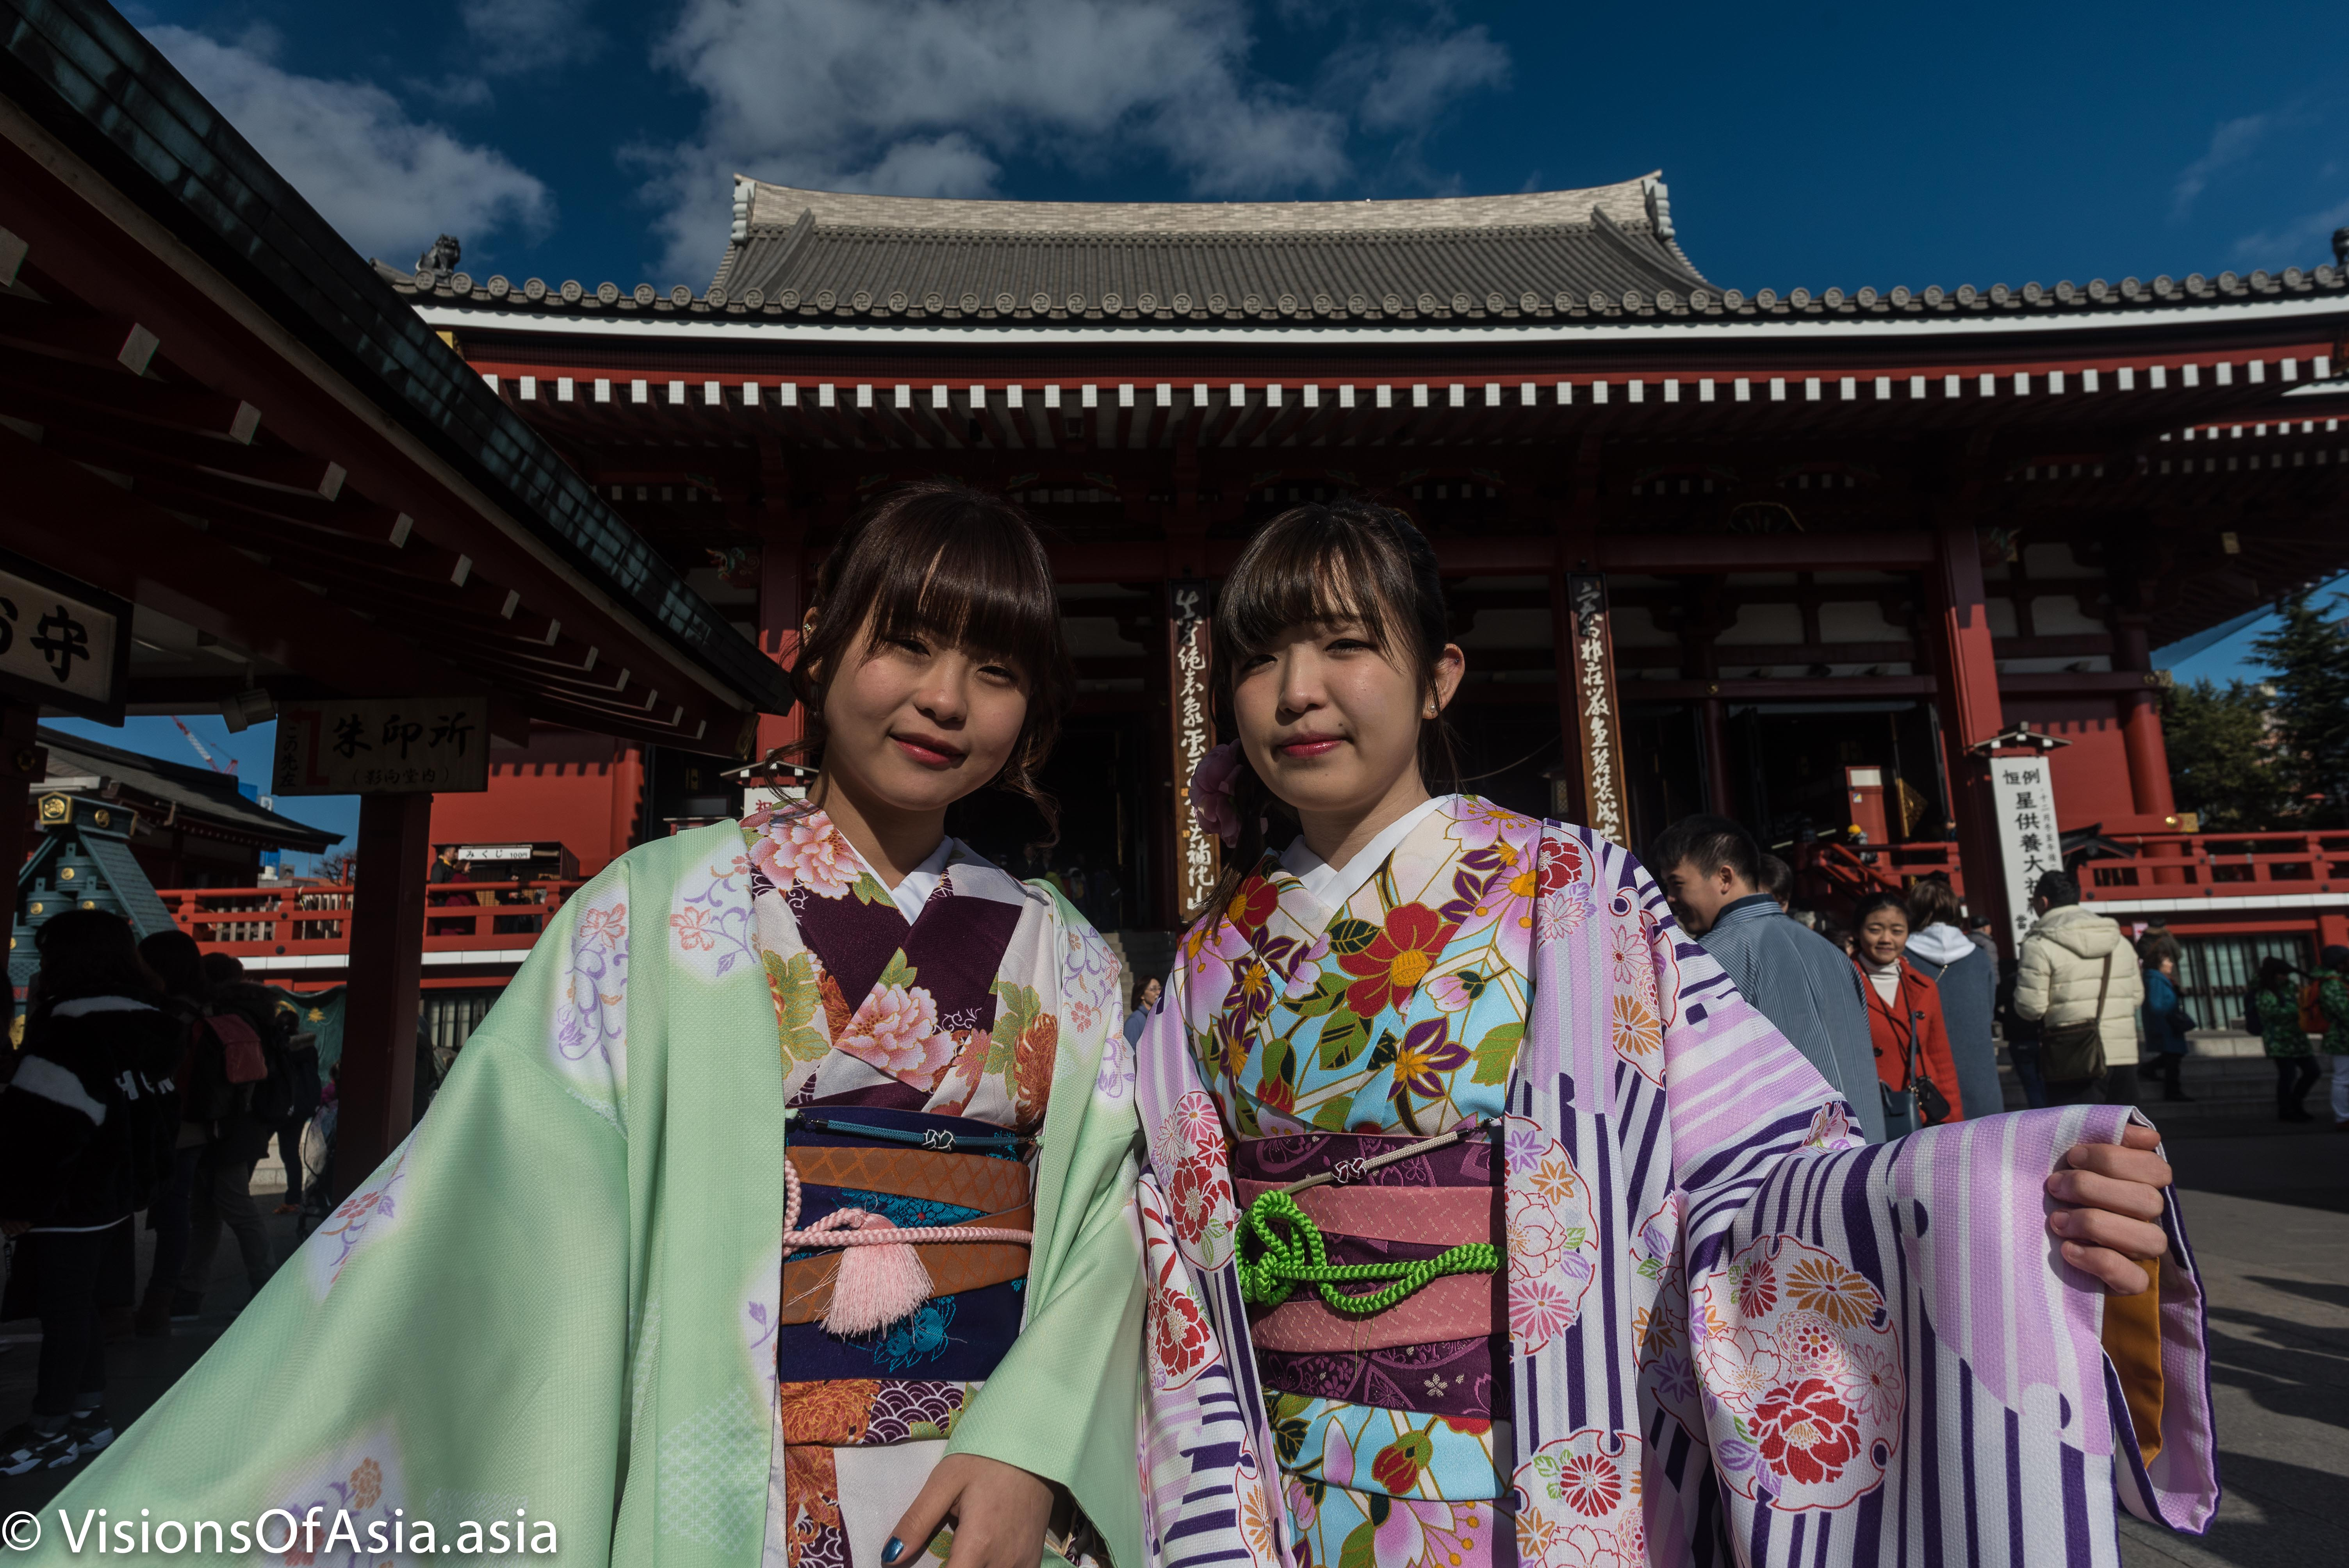 Japan: a visit to Sensoji shrine